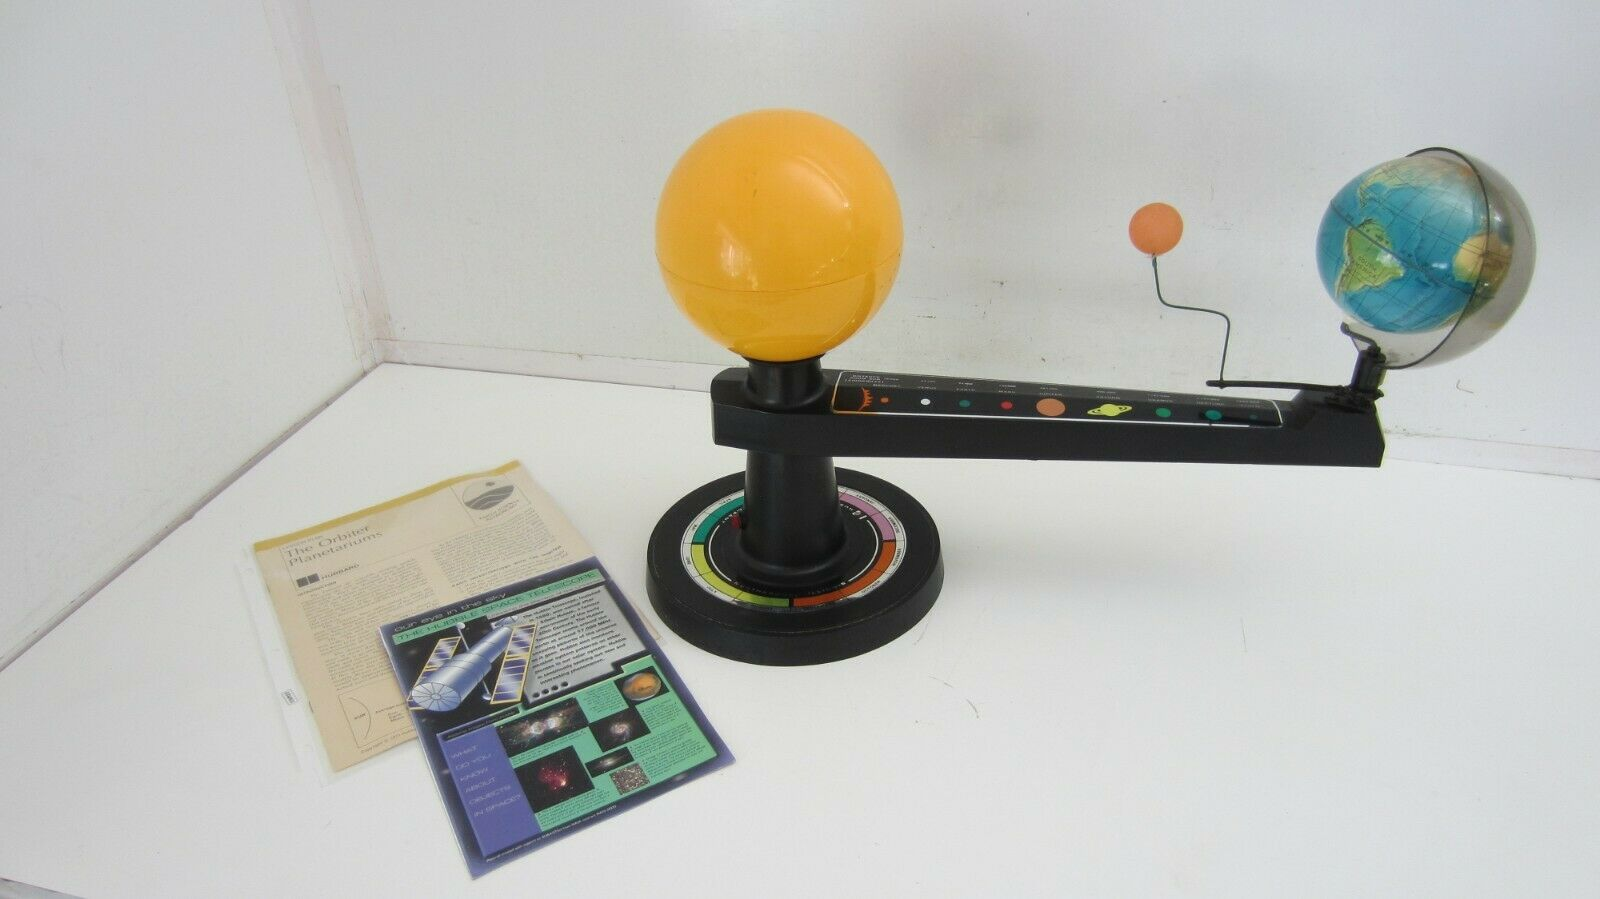 HUBBARD ILLUMINATED SCIENTIFIC ORBITER SOLAR SYSTEM EDUCATIONAL modello